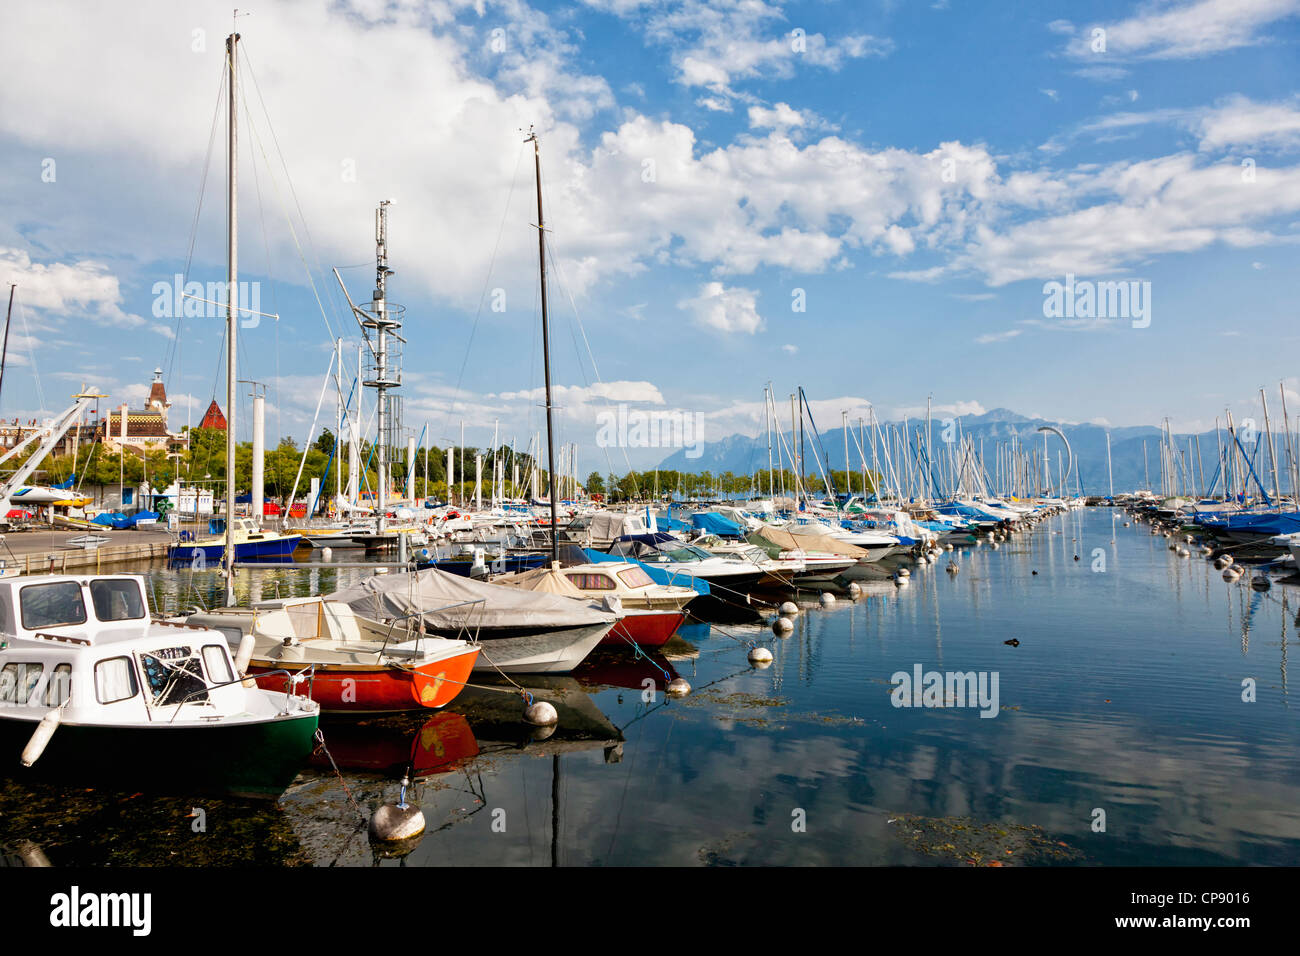 Switzerland, Lausanne, View of sailing ships moored at port - Stock Image